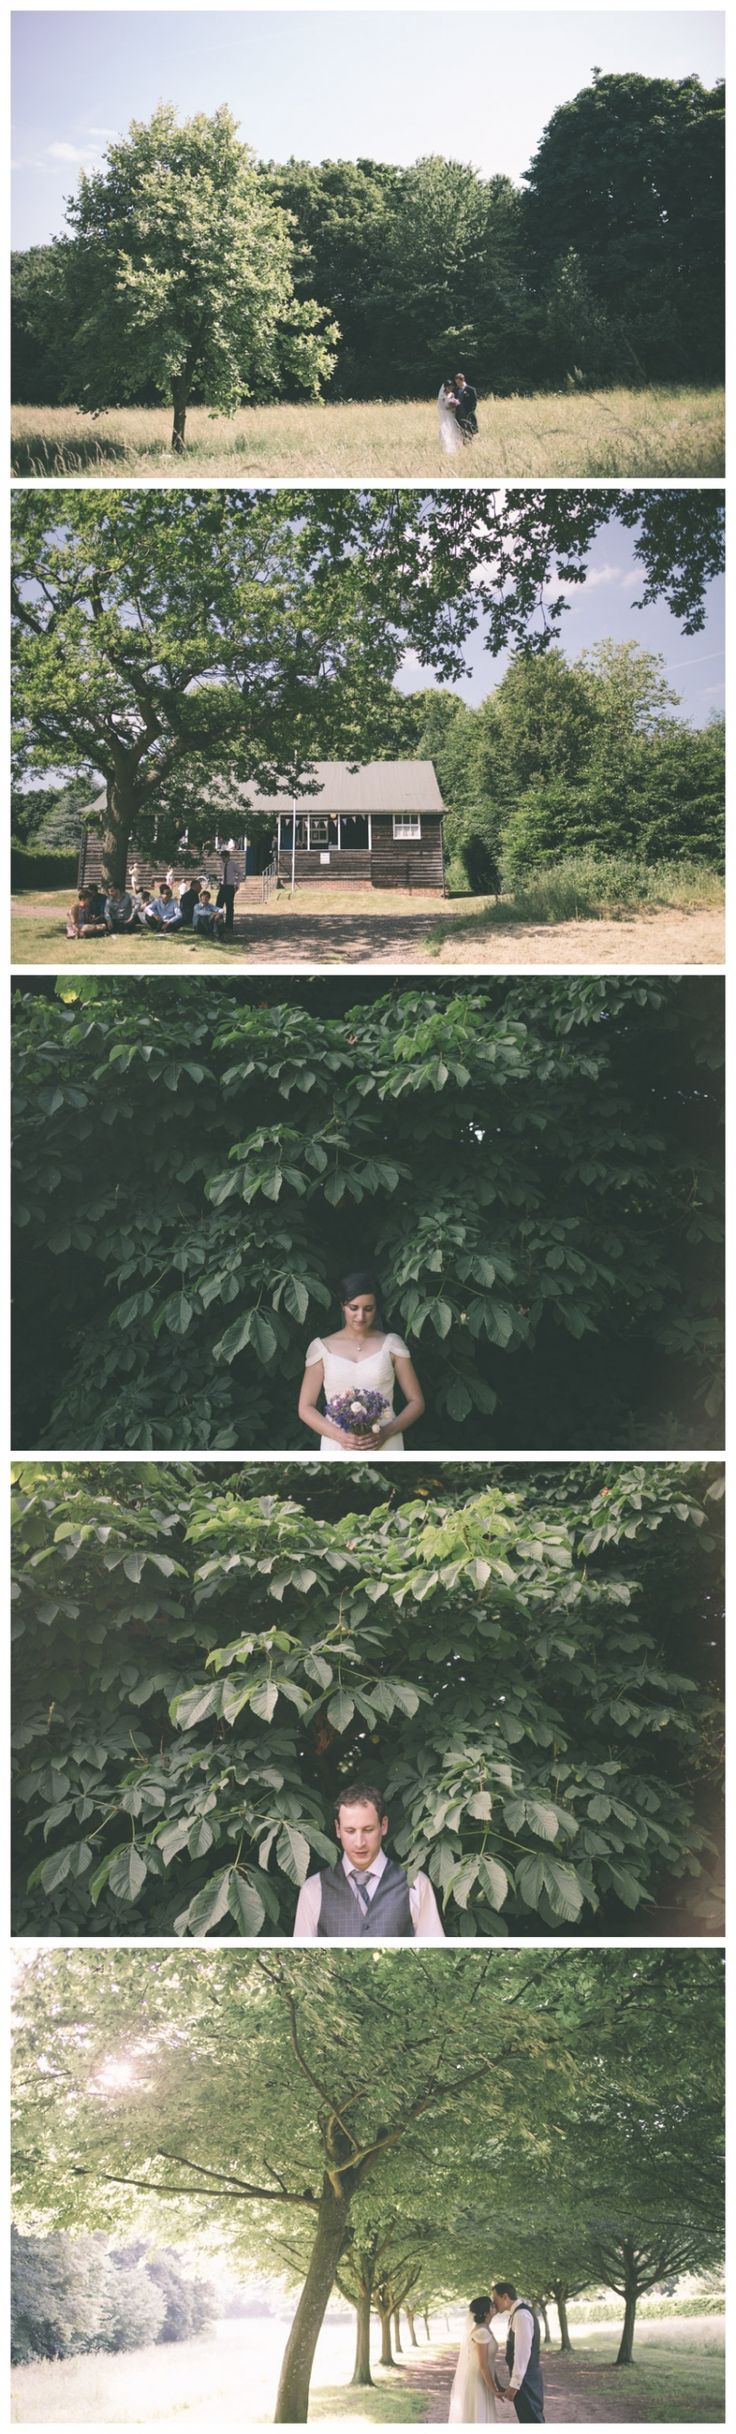 Wedding at Whipsnade Tree Cathedral